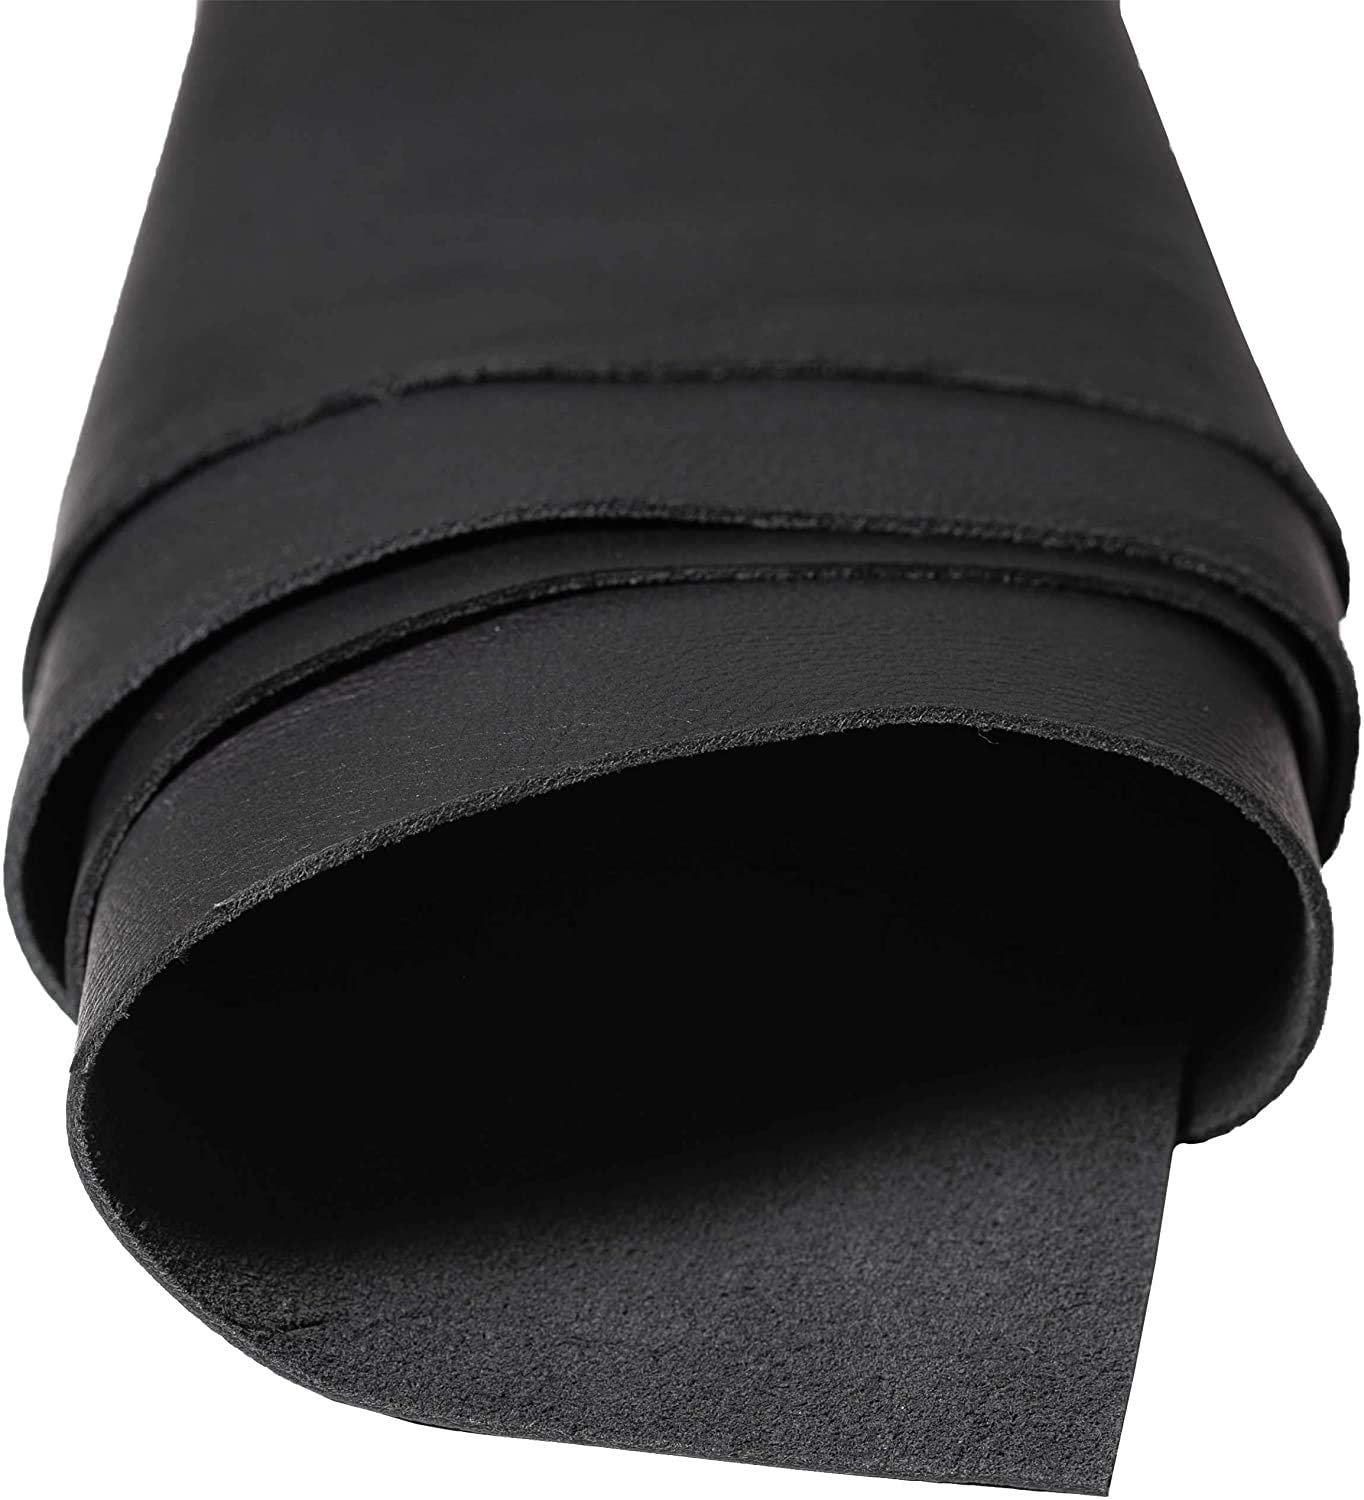 """DiLoro Full Grain Leather Cowhide Fabric Material Sheet Hides One Piece Black Skins (Black, 12""""x24"""")"""